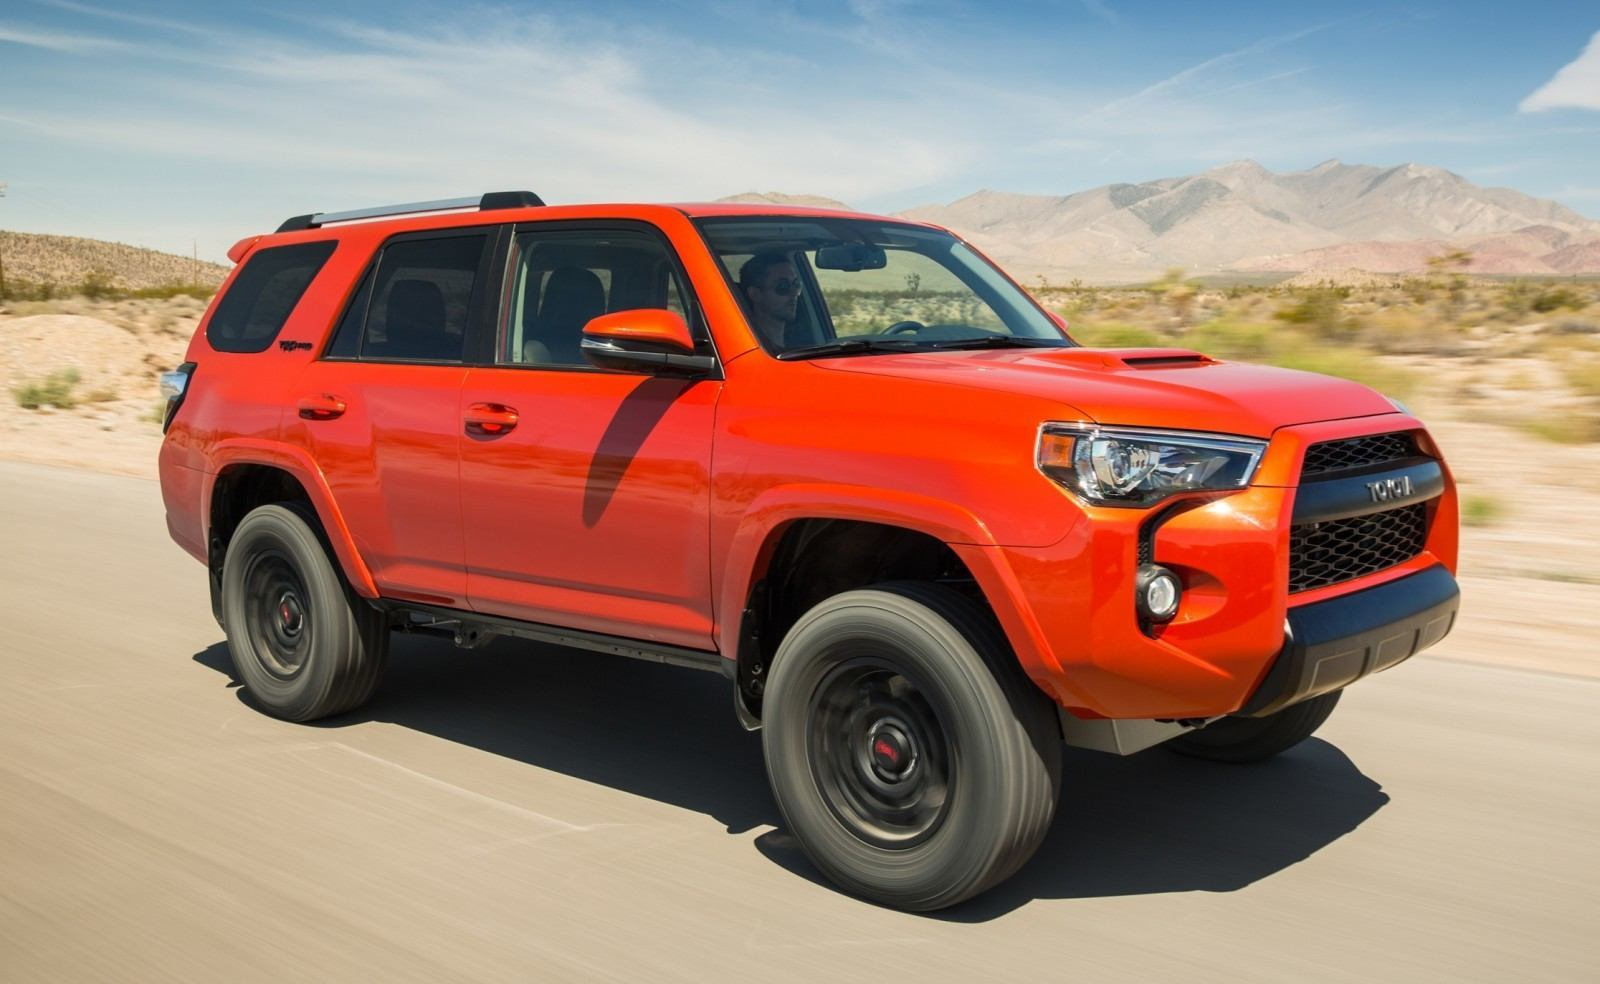 2019 Toyota 4Runner Concept News and TRD Pro Update